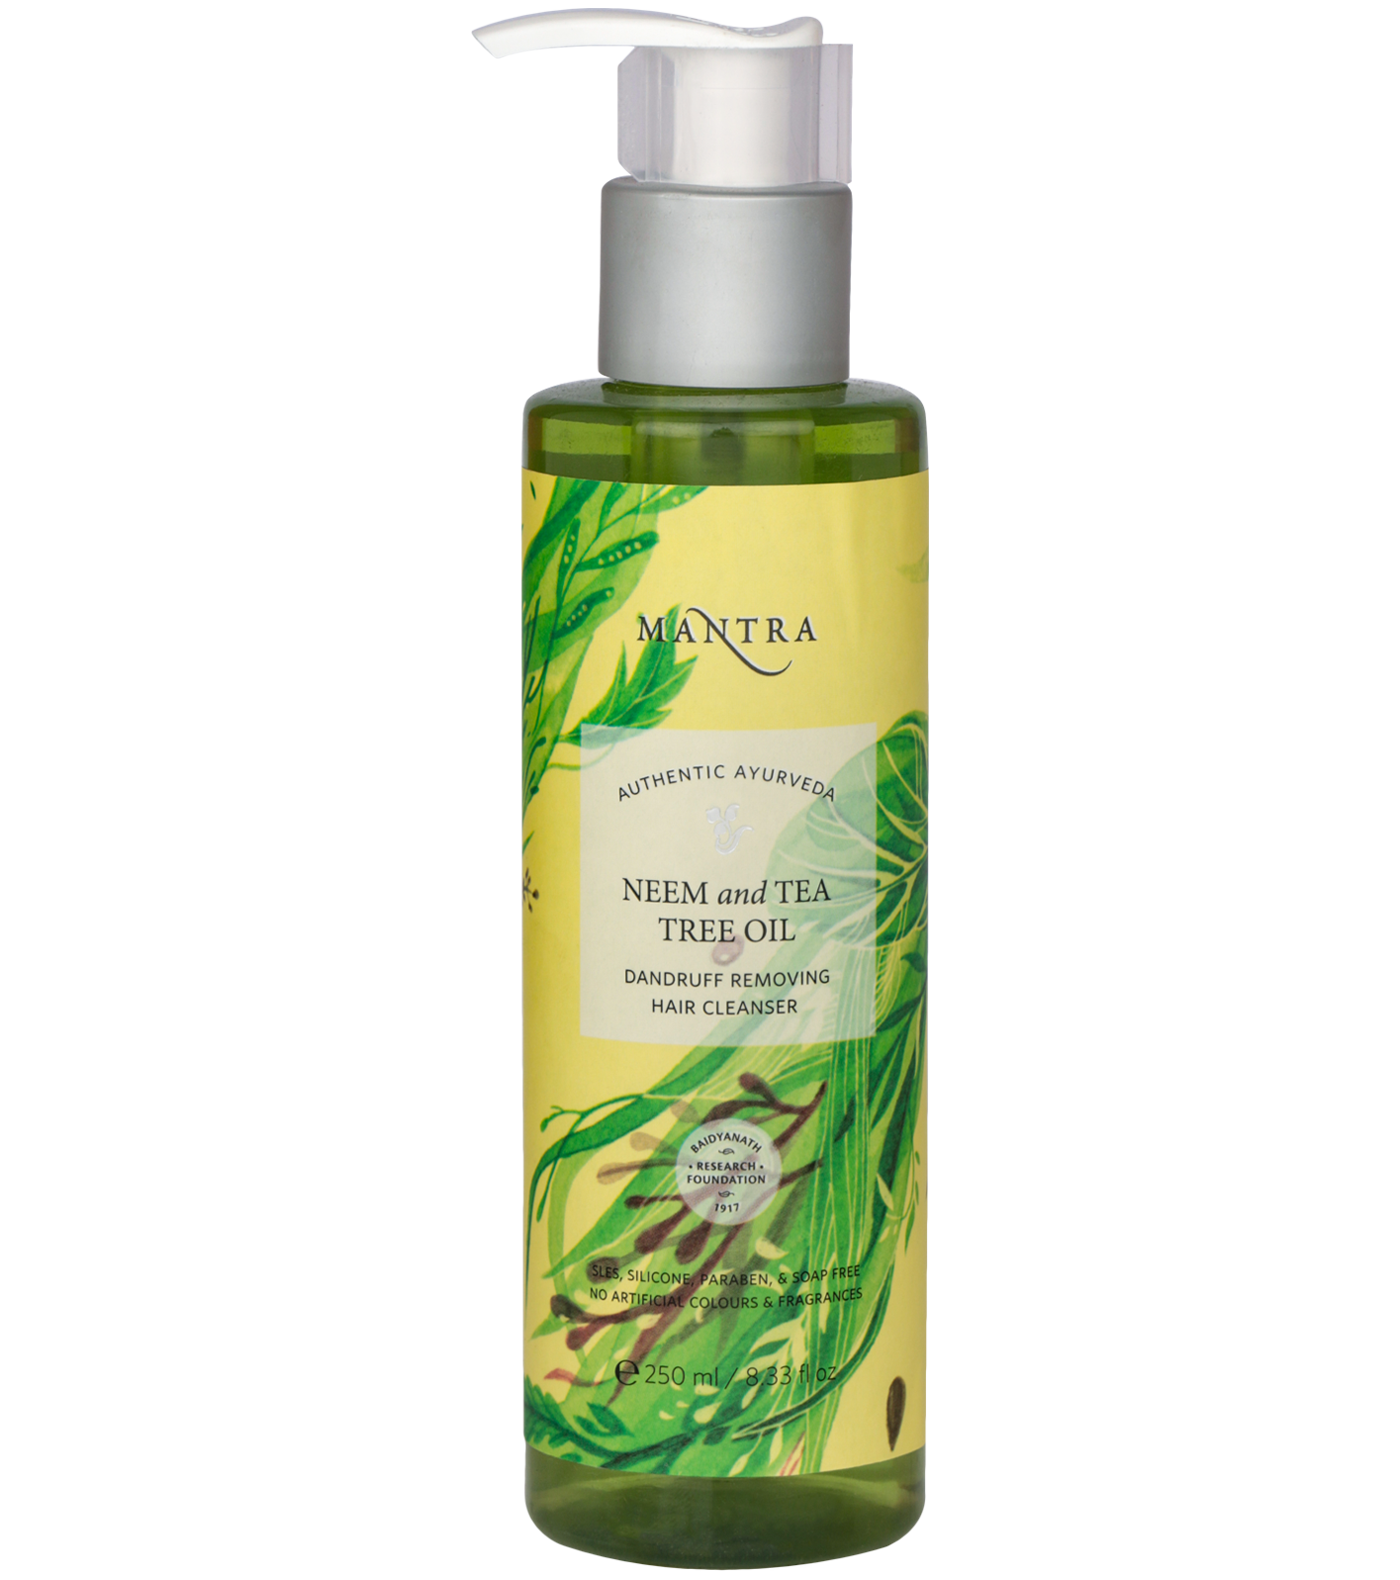 Neem and Tea Tree Oil Dandruff Removing Hair Cleanser